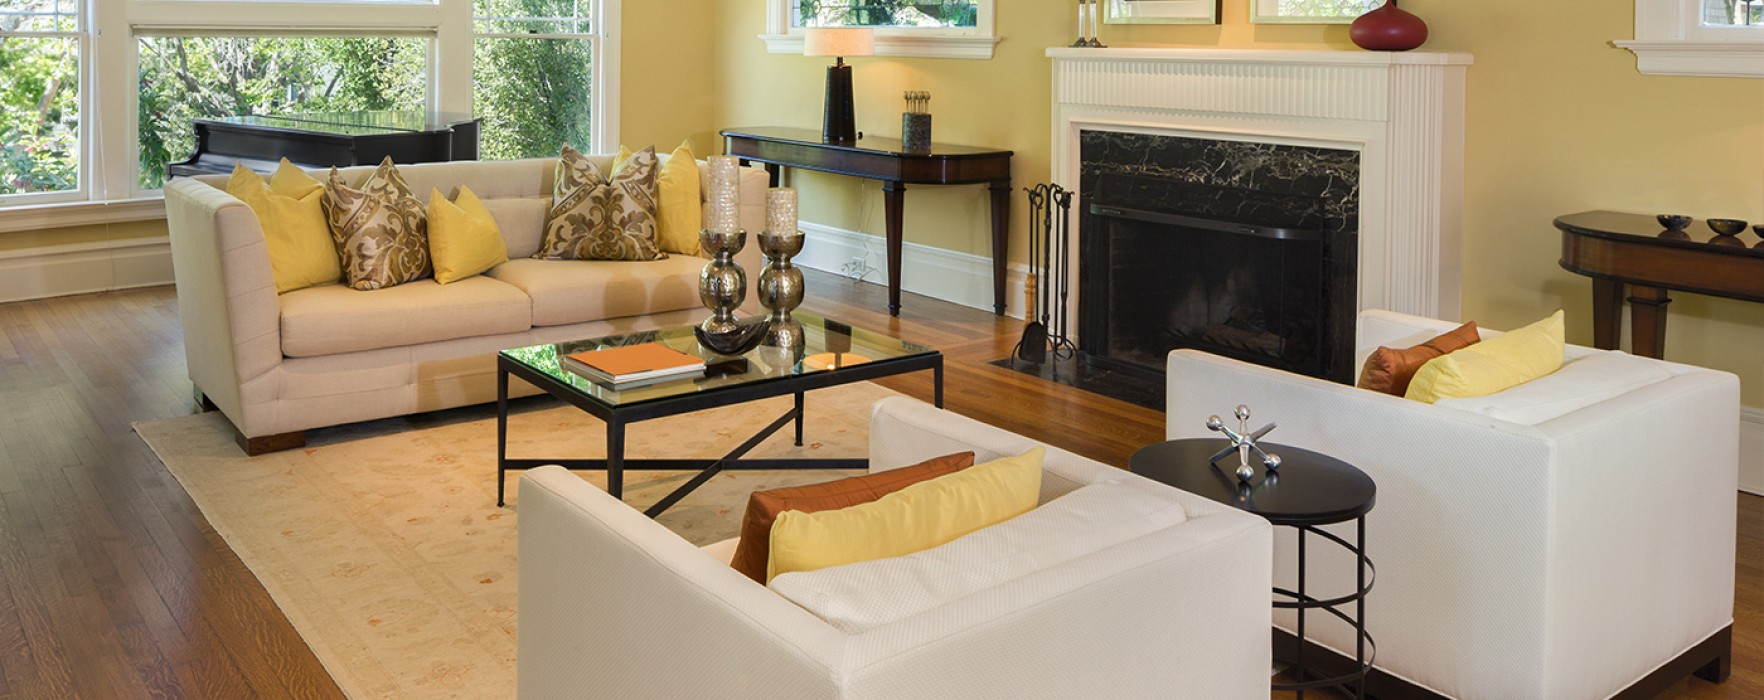 How To Choose The Perfect Paint Color Better Homes And